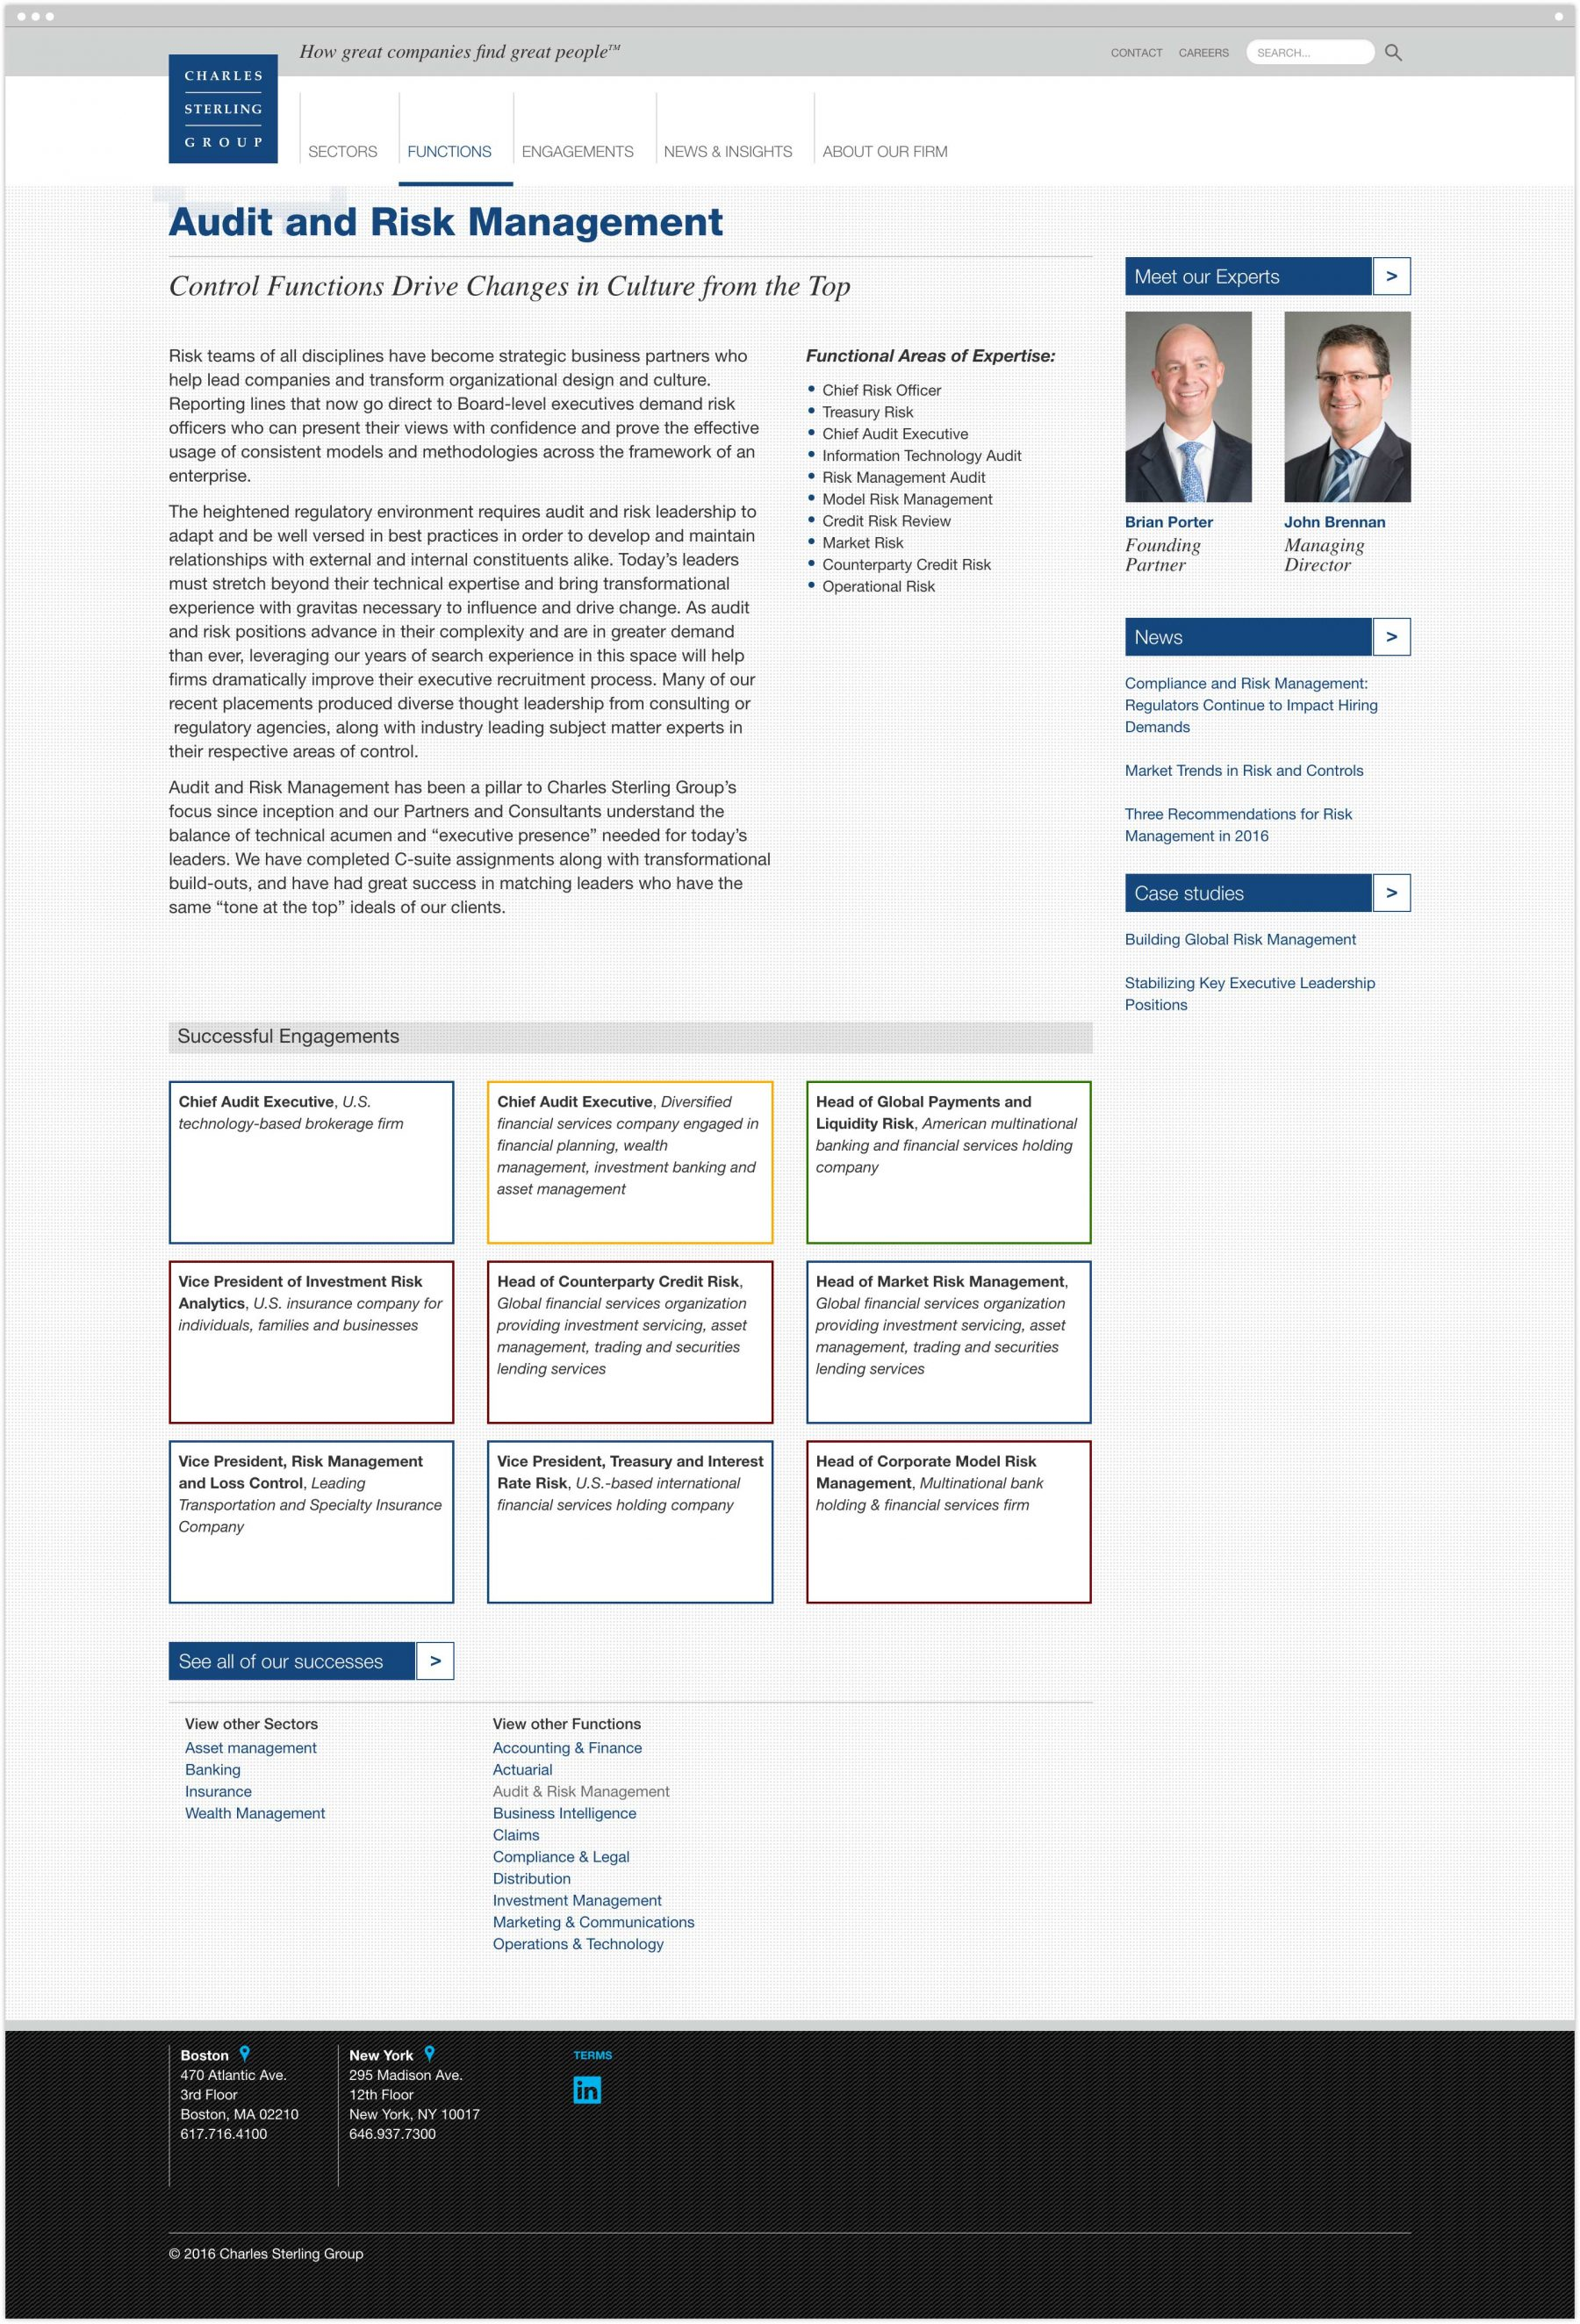 Audit and Risk Management interior page